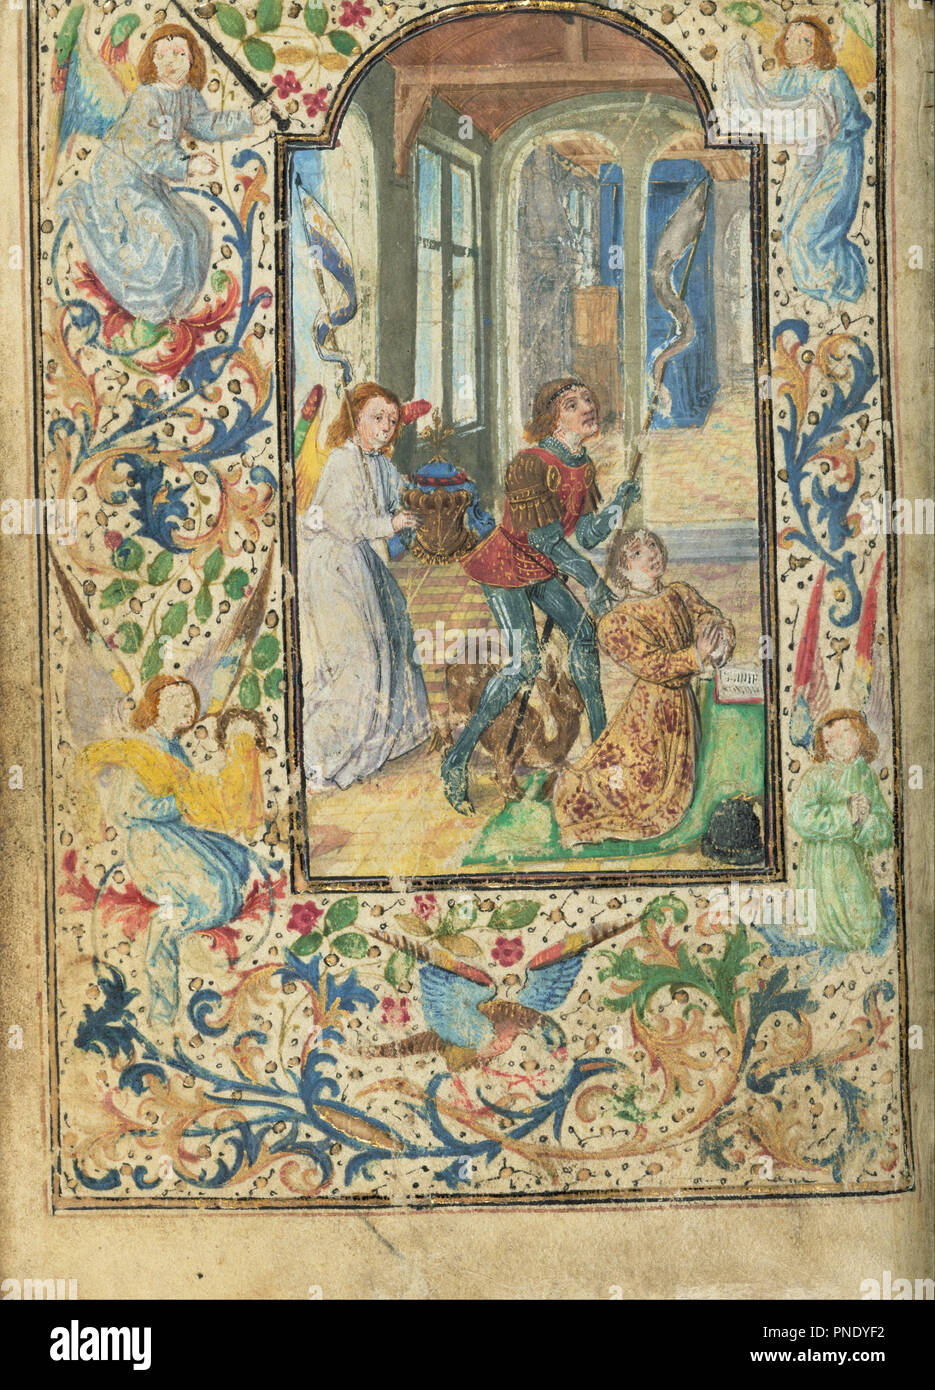 Charles the Bold Presented by Saint George. Date/Period: Ca. 1471. Folio. Tempera colors, gold leaf, gold paint, silver paint, and ink on parchment. Height: 124 mm (4.88 in); Width: 92 mm (3.62 in). Author: Lieven van Lathem. Stock Photo